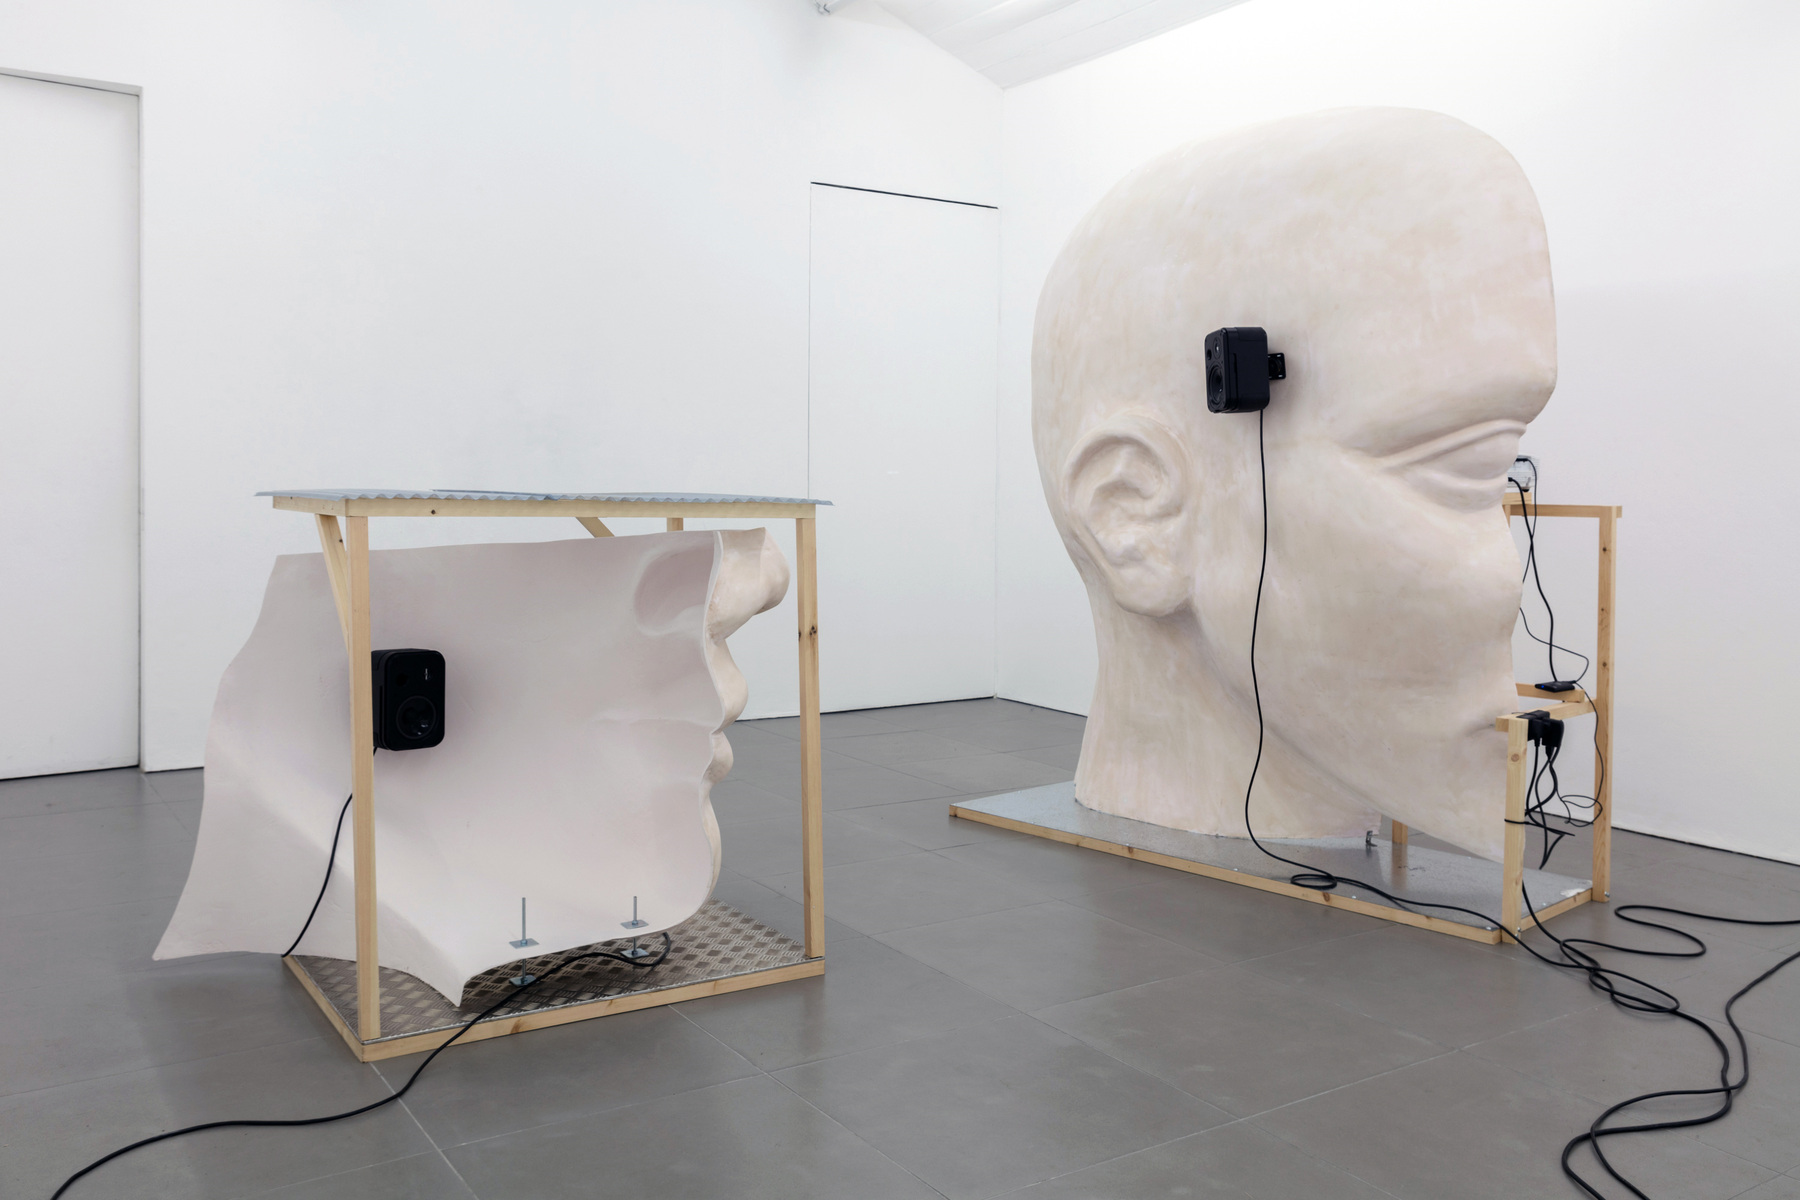 12. Anne de Vries, SUBMISSION 2015, wood, metal, fibreglass resin, audio, video